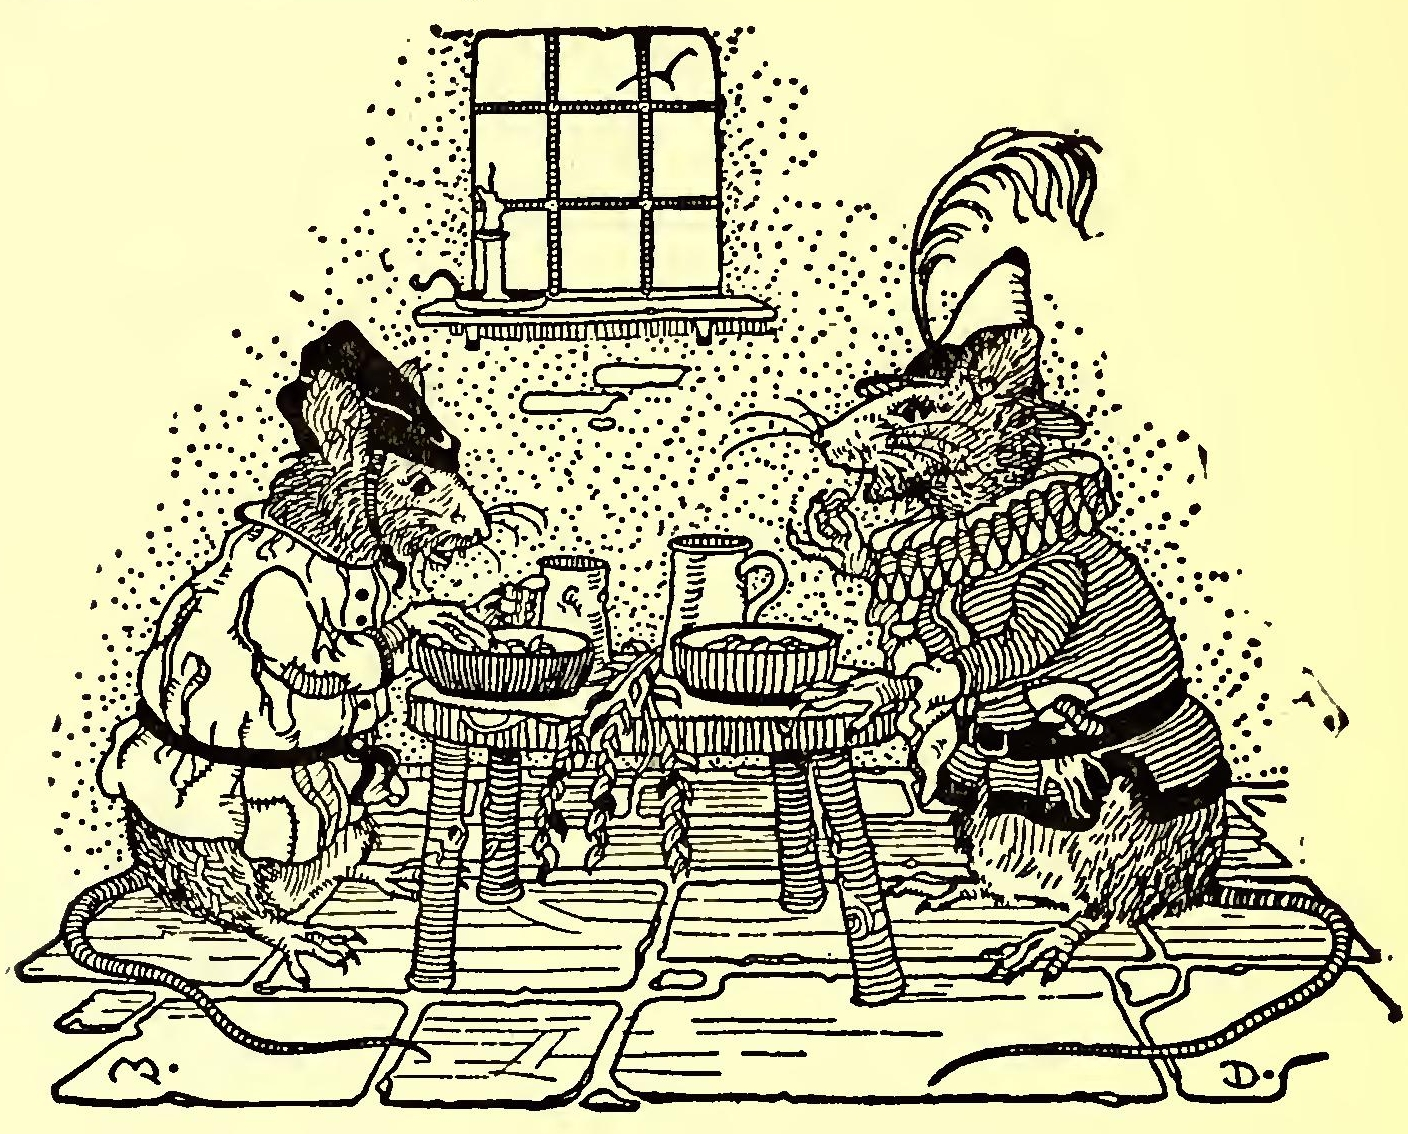 Two rats sitting together and having dinner.